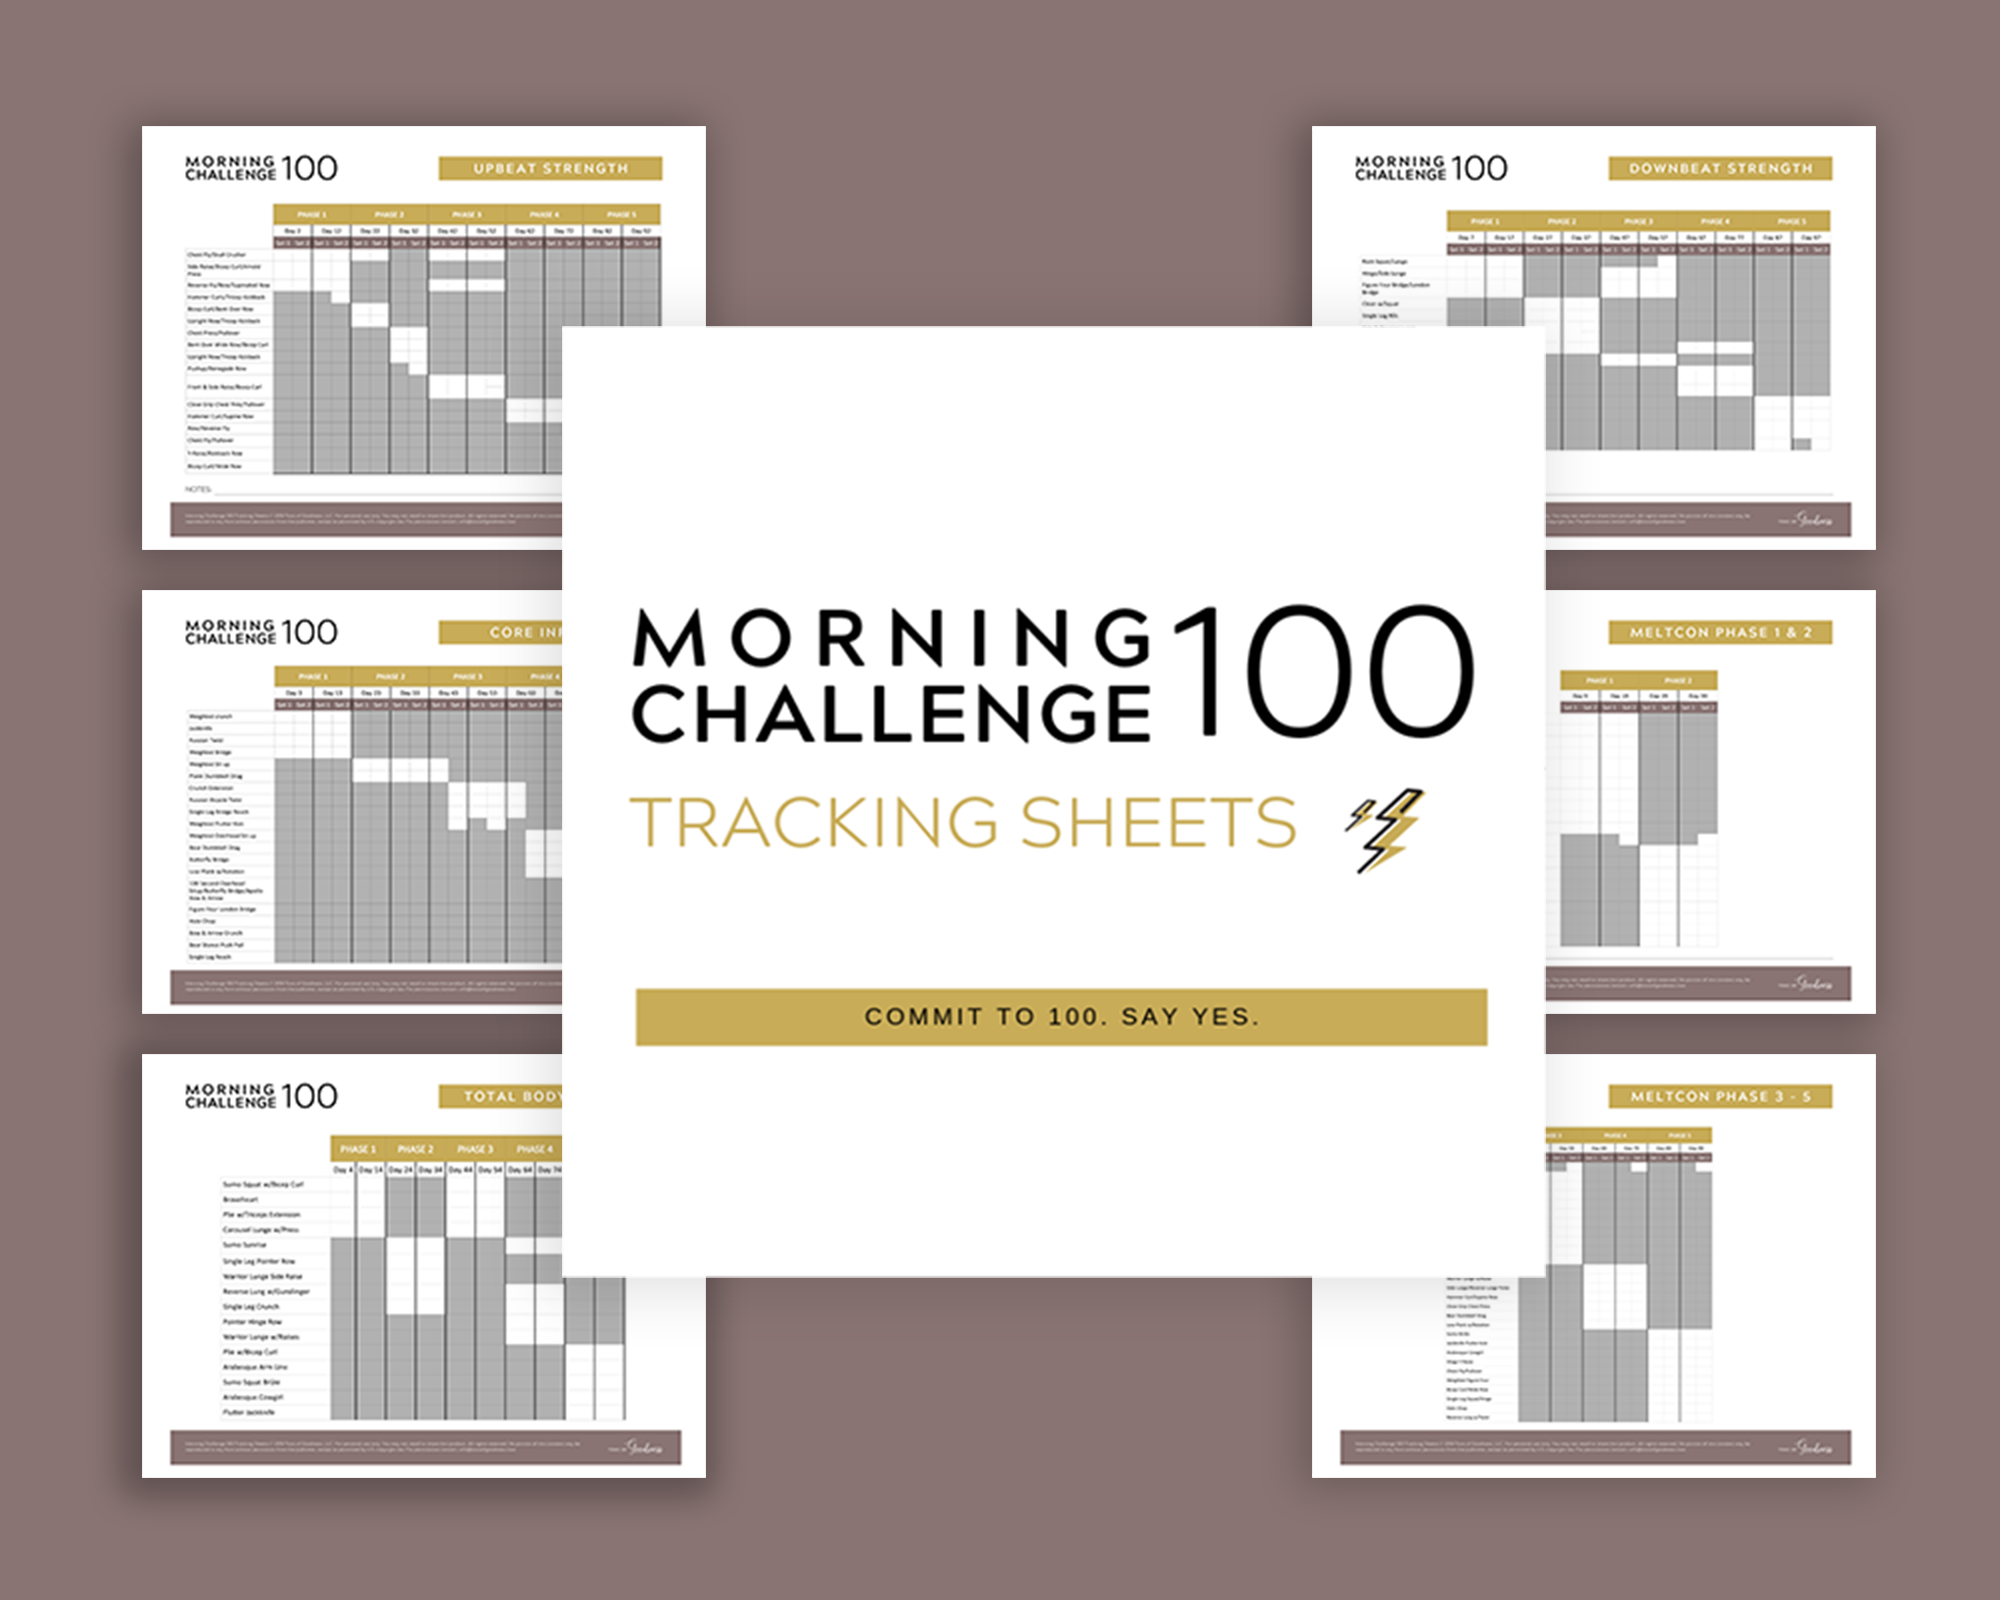 morning challenge 100 tracking sheets